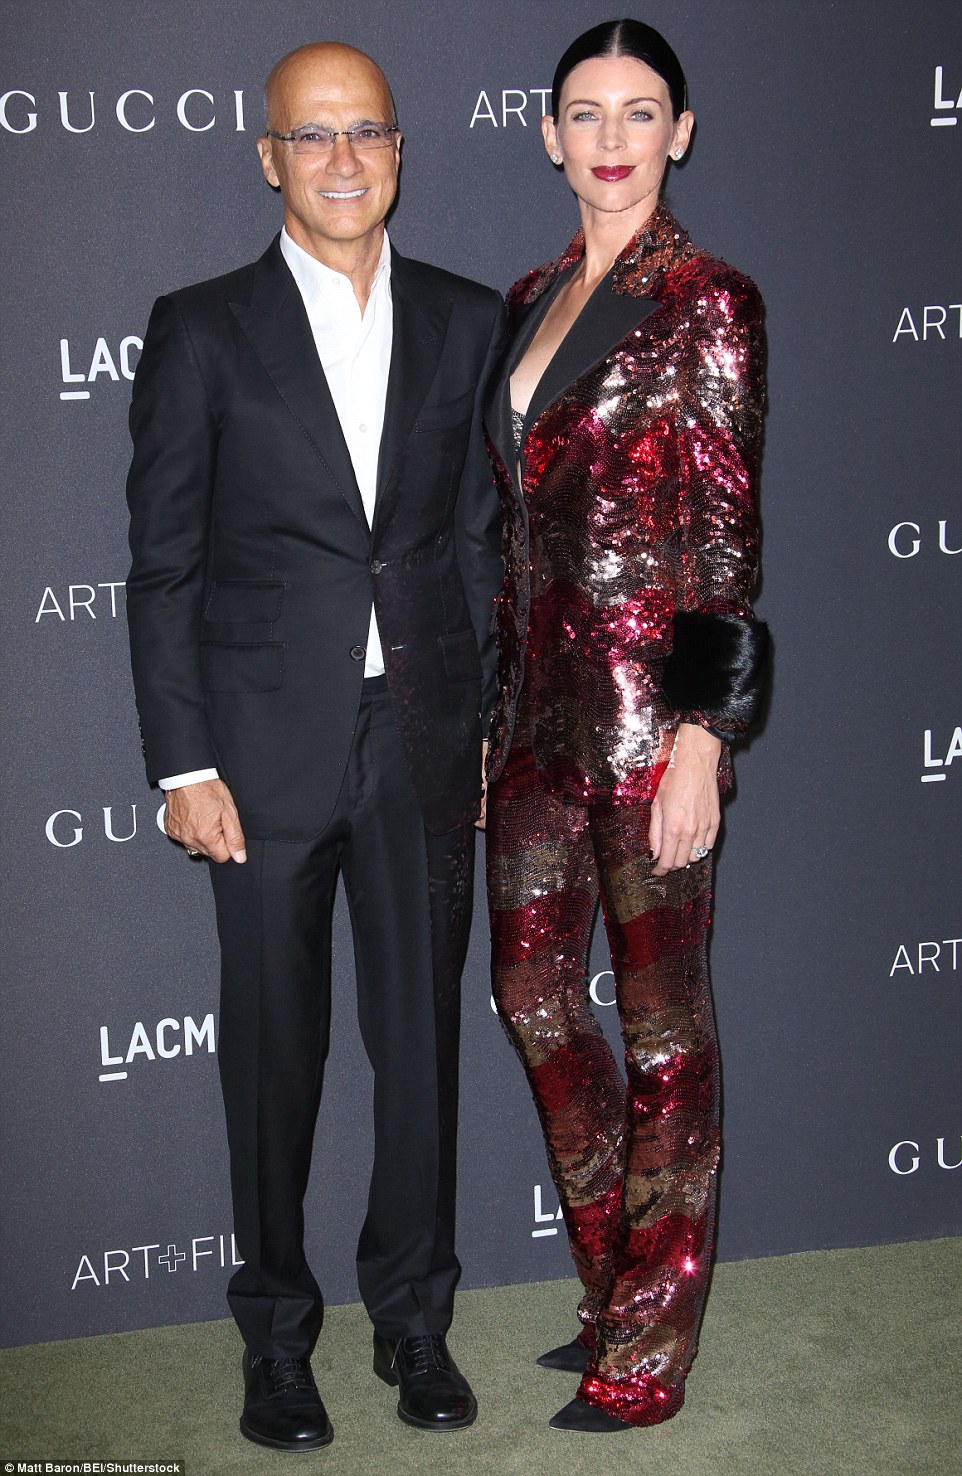 39dc4f1100000578-3886442-the_newlywed_show_music_man_jimmy_iovine_and_liberty_ross_looked-a-75_1477796672781